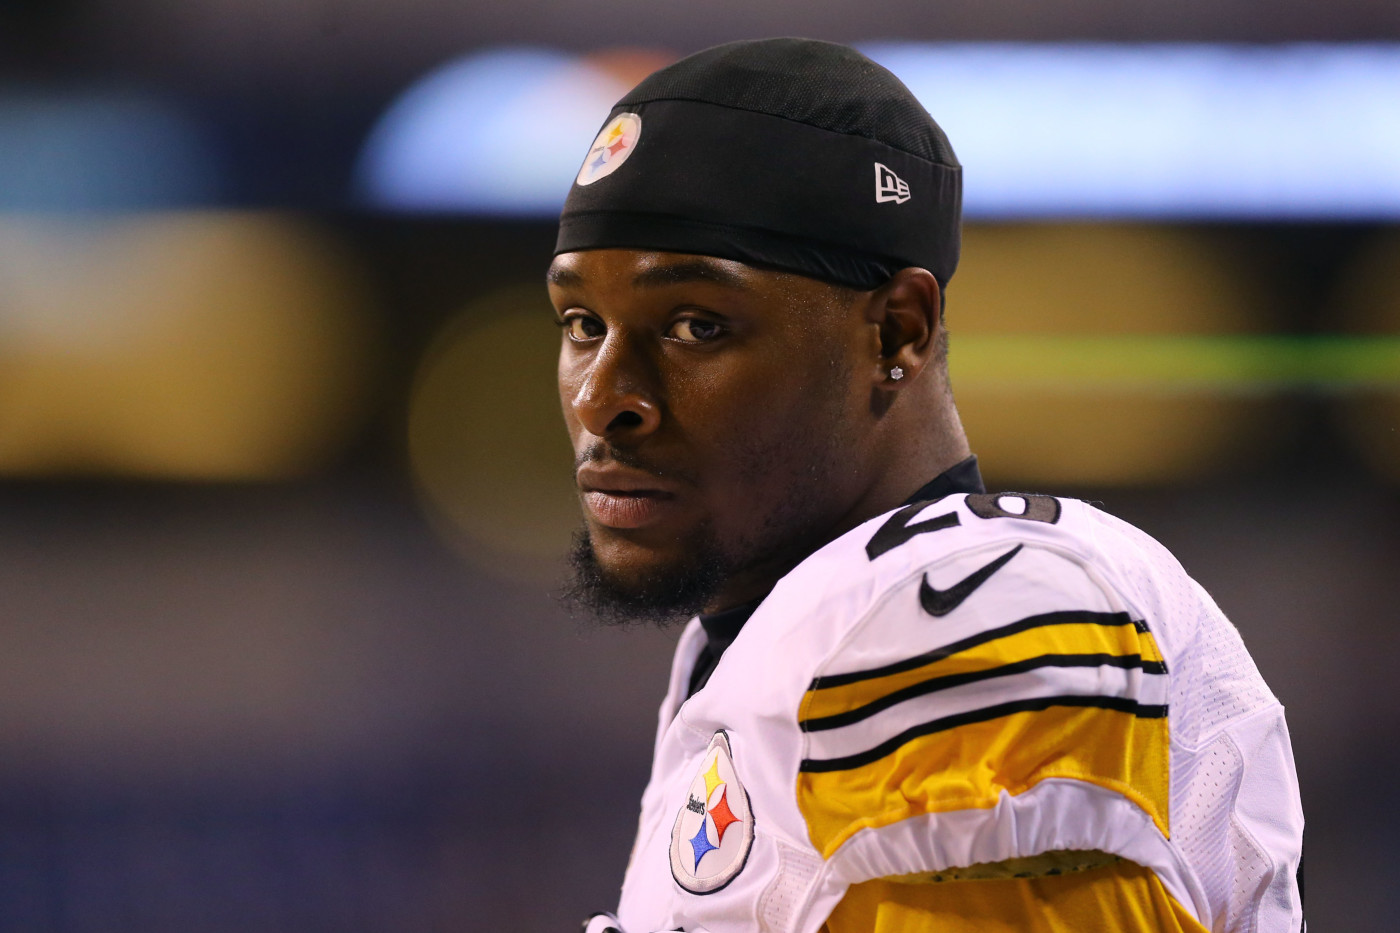 Le'Veon Bell Steelers Colts 2017